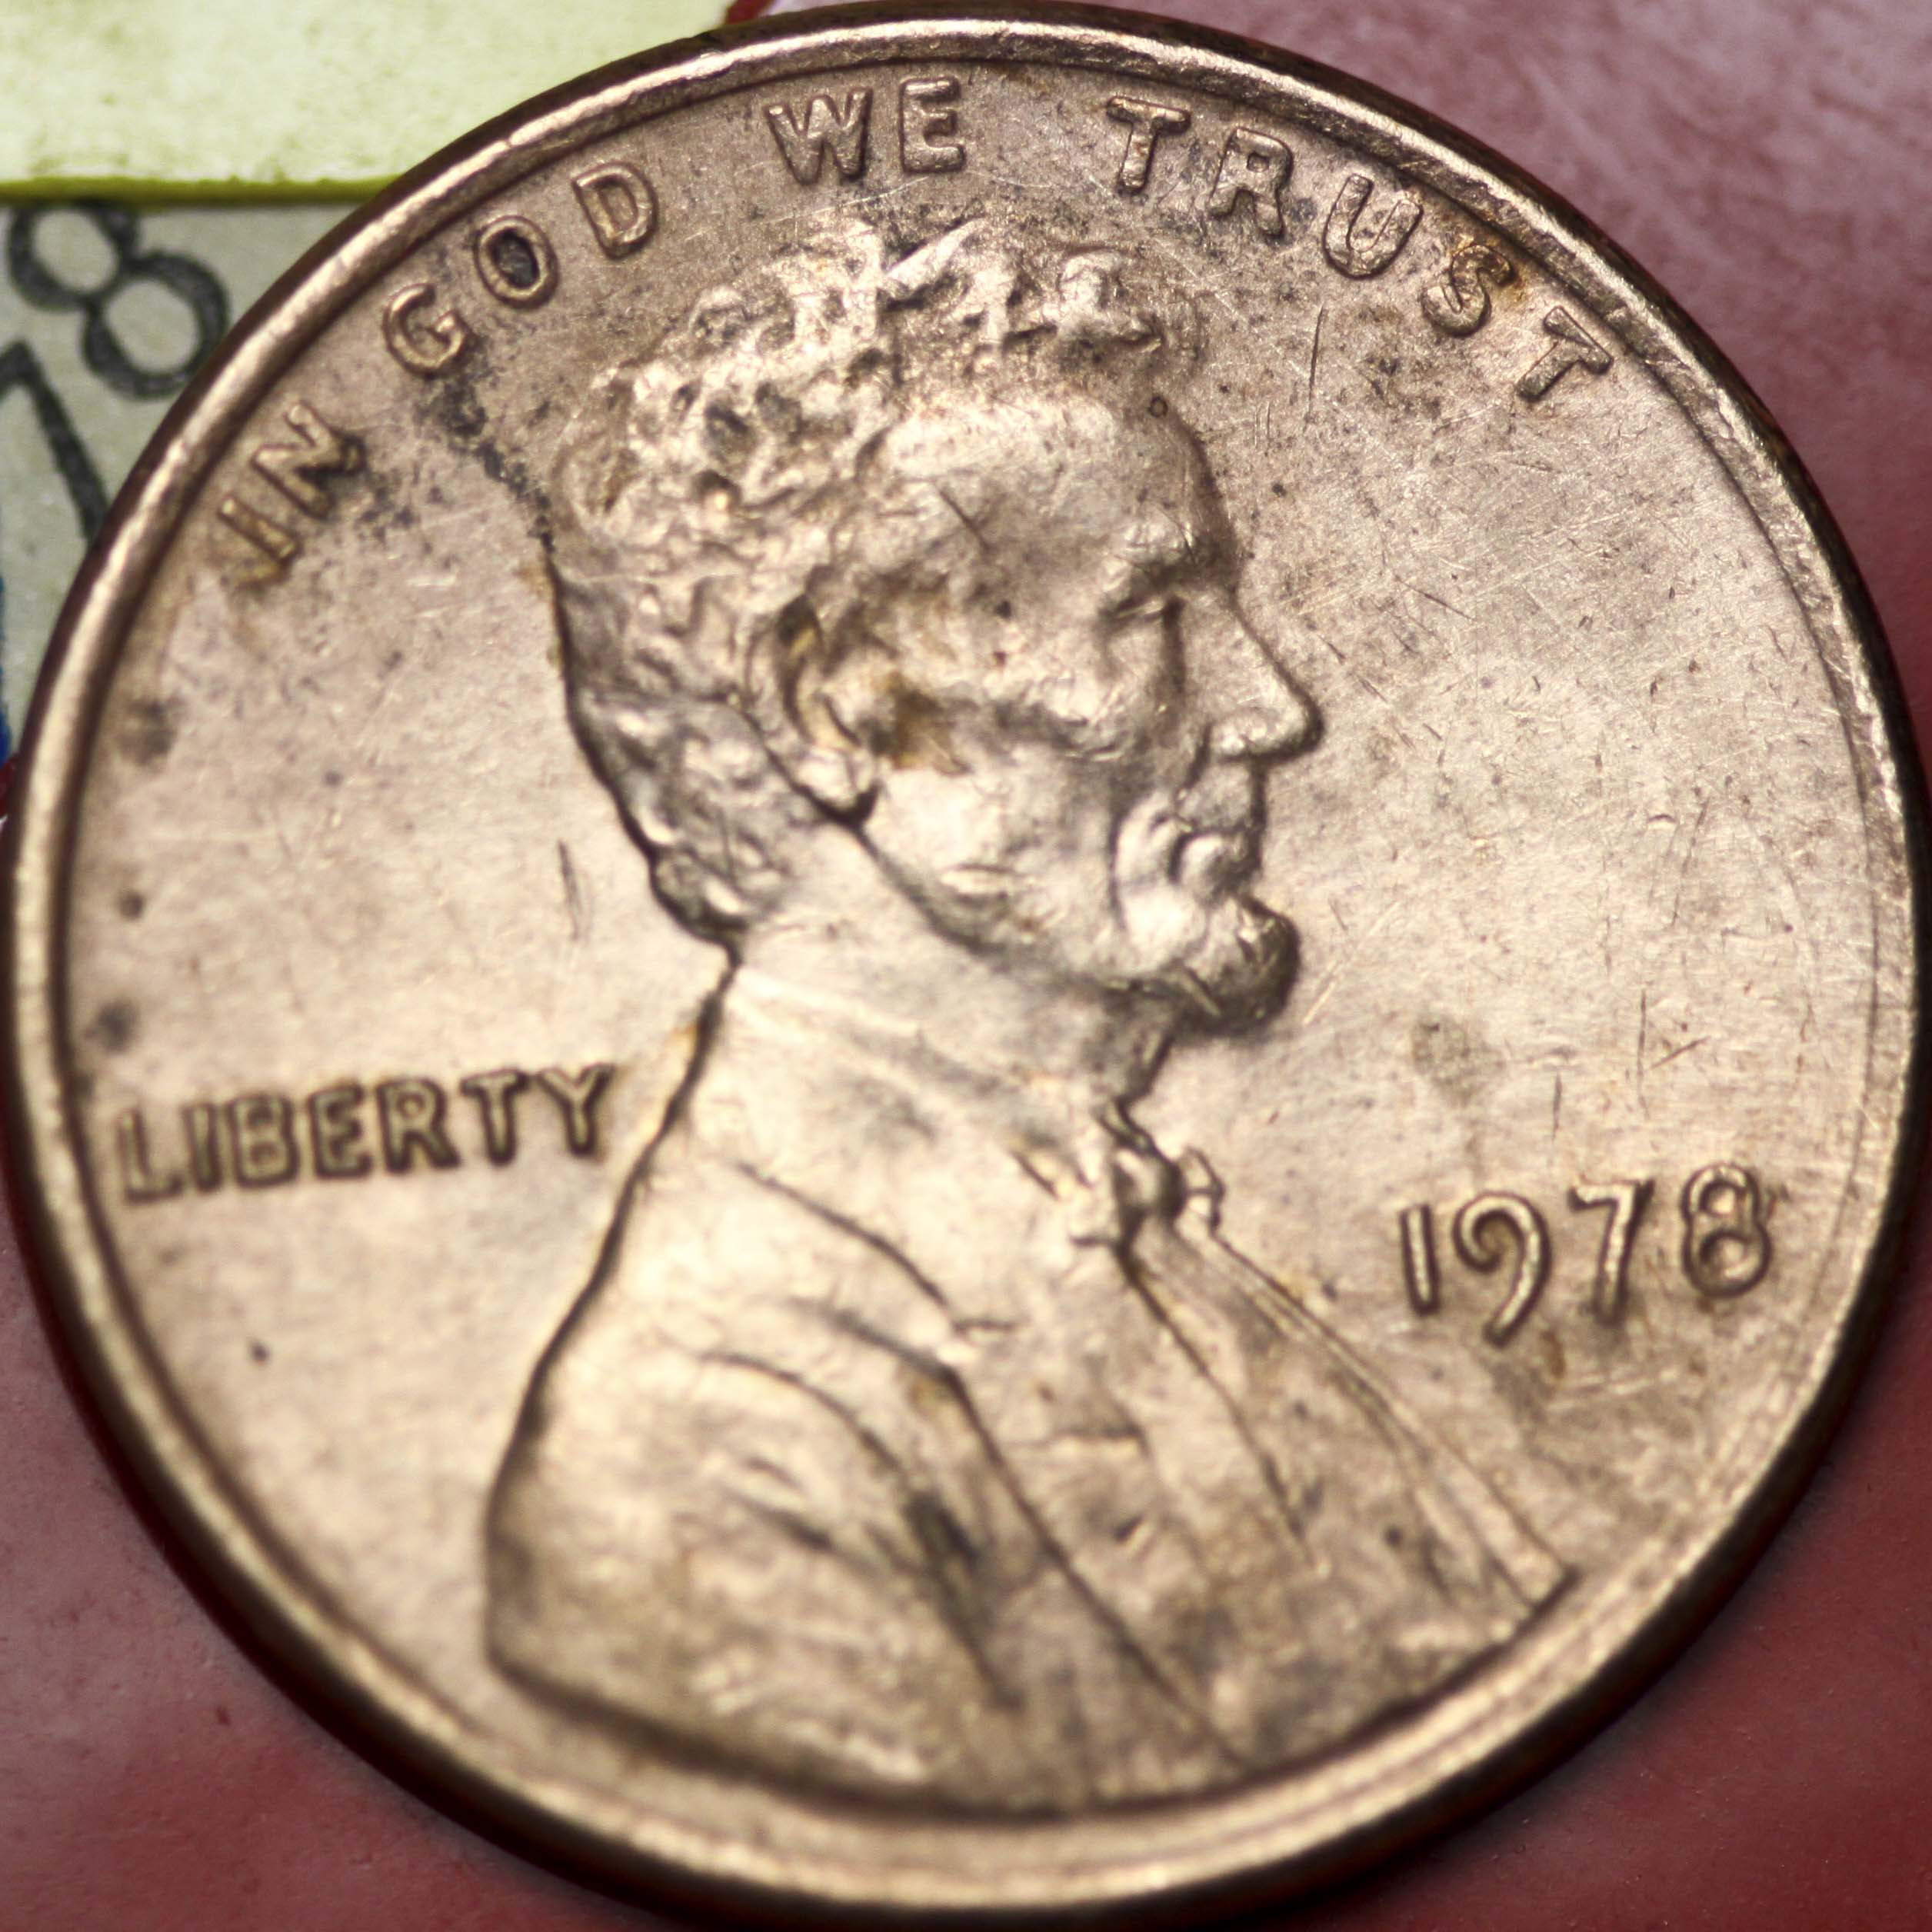 Find Your 1978 Penny Value Here (All 1978 Pennies Are Worth 2x Face Value… Up To $4,000!)